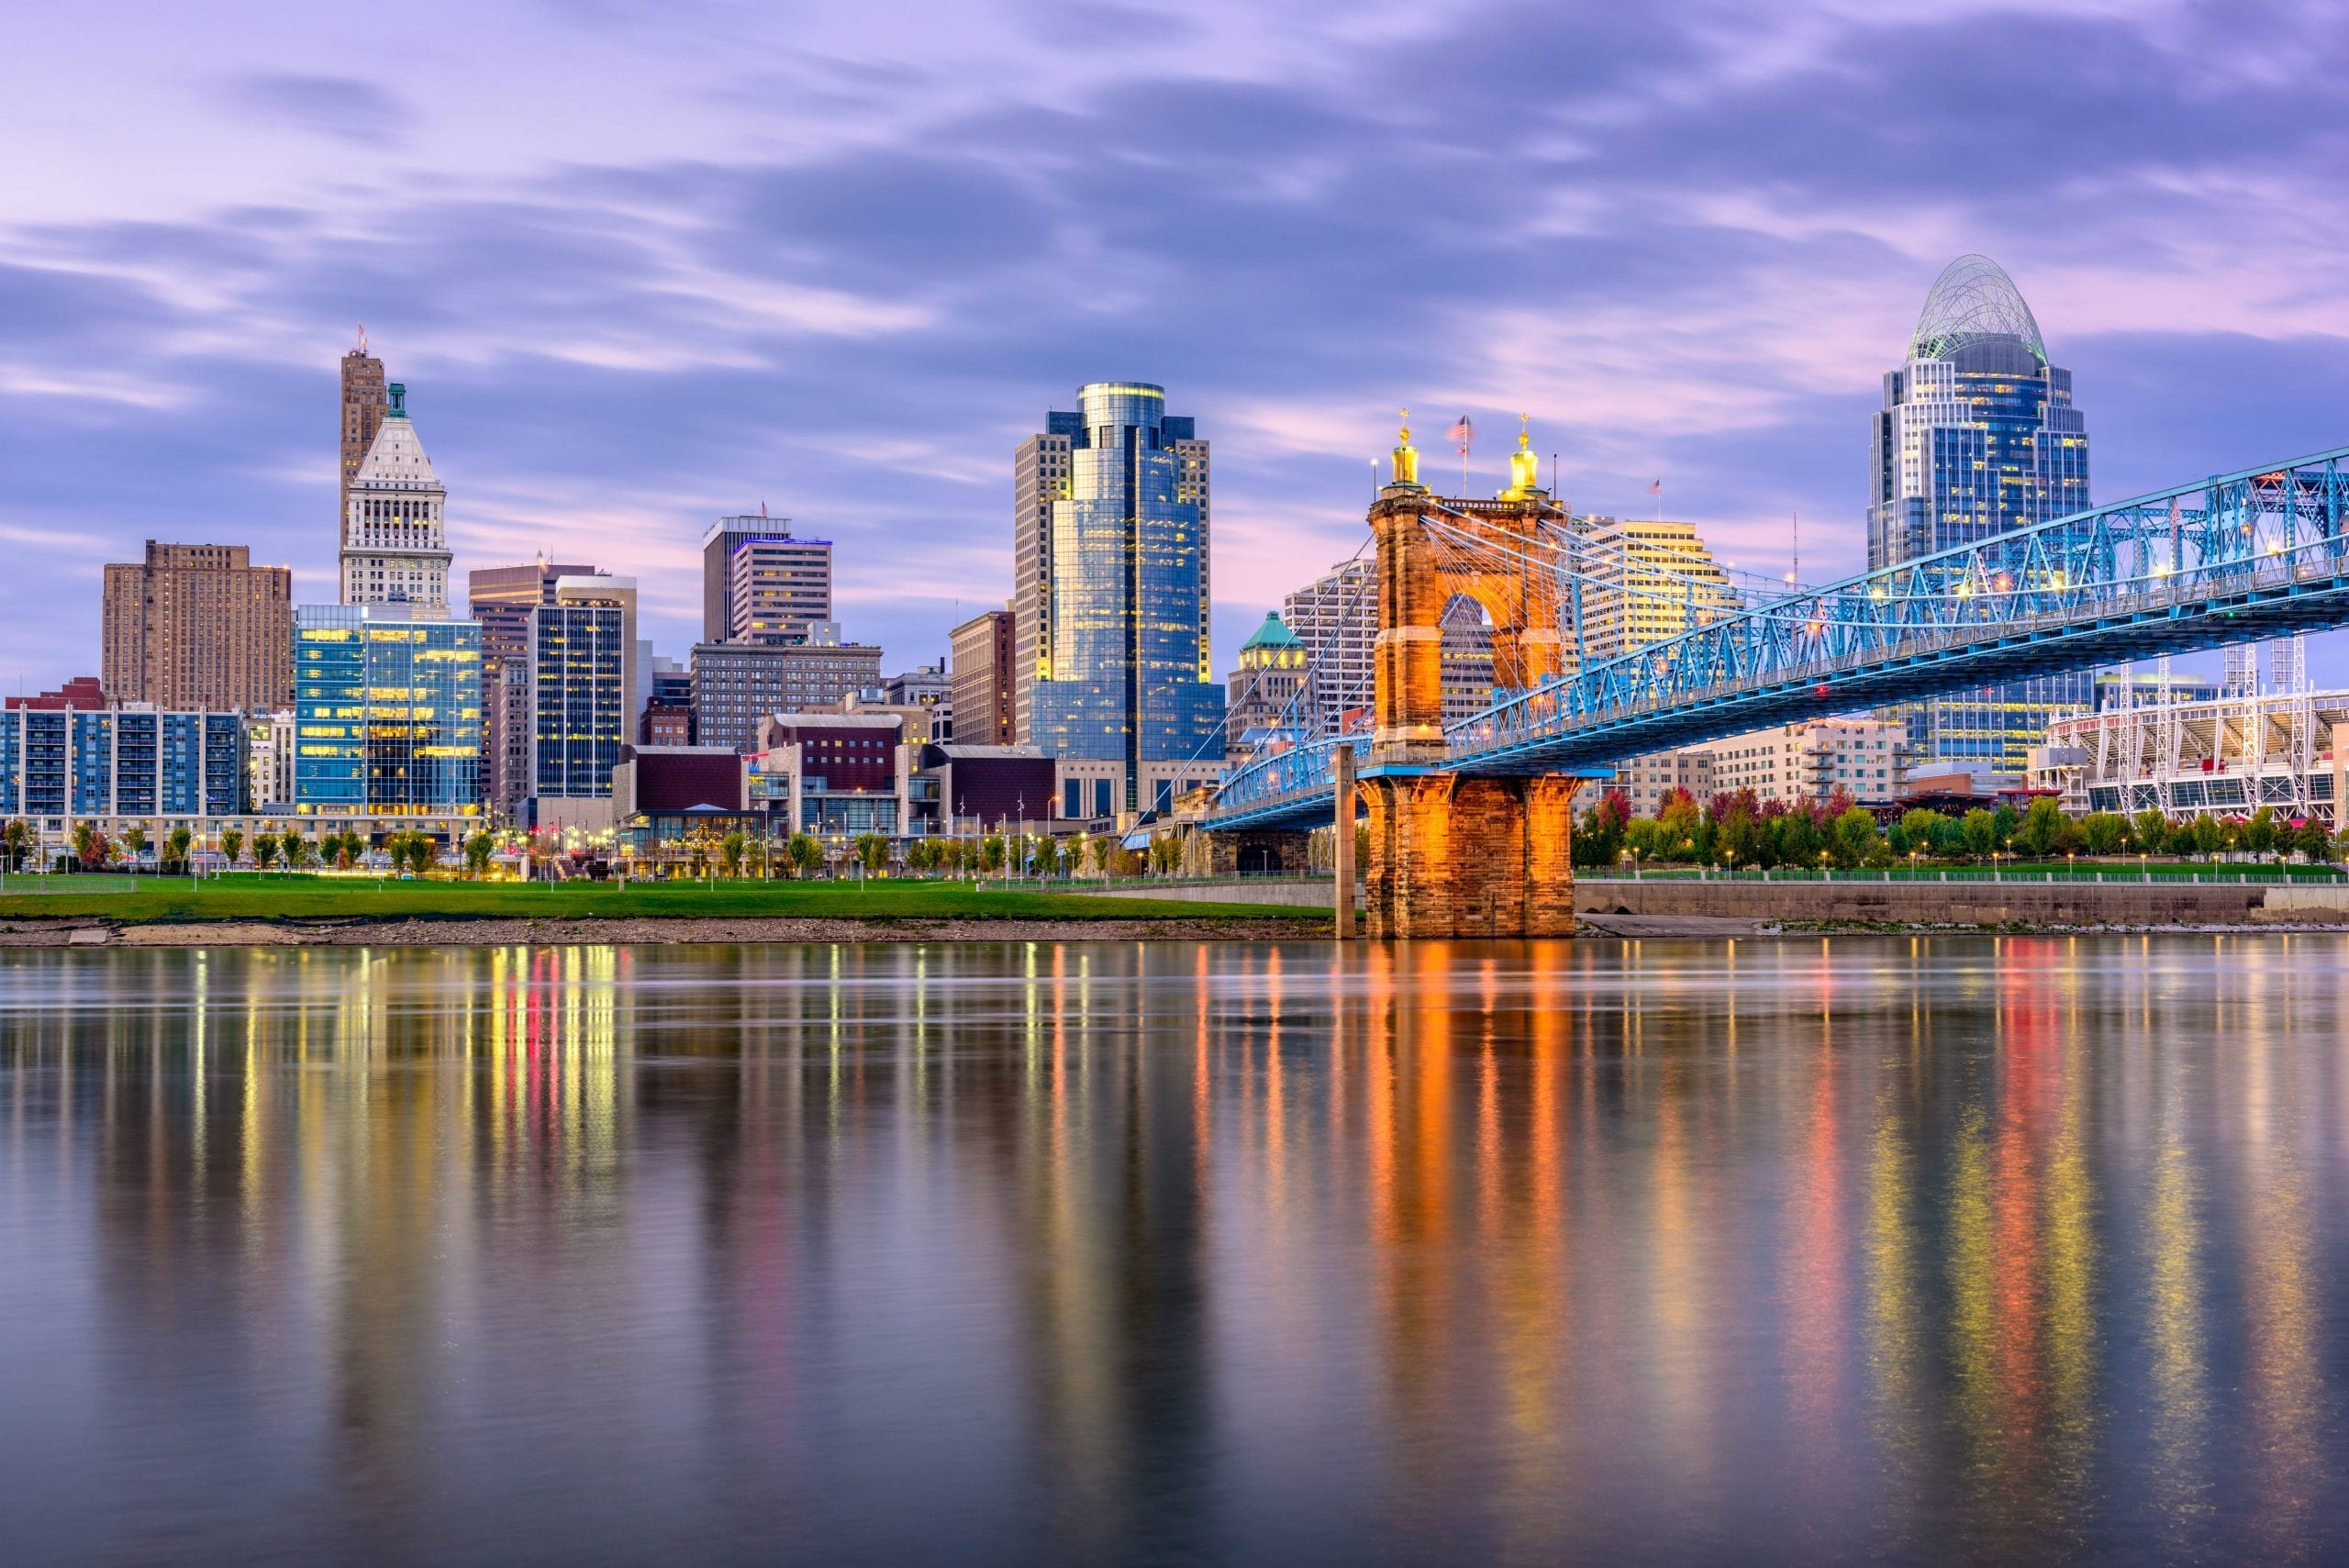 Skyline picture of Cincinnati, Ohio